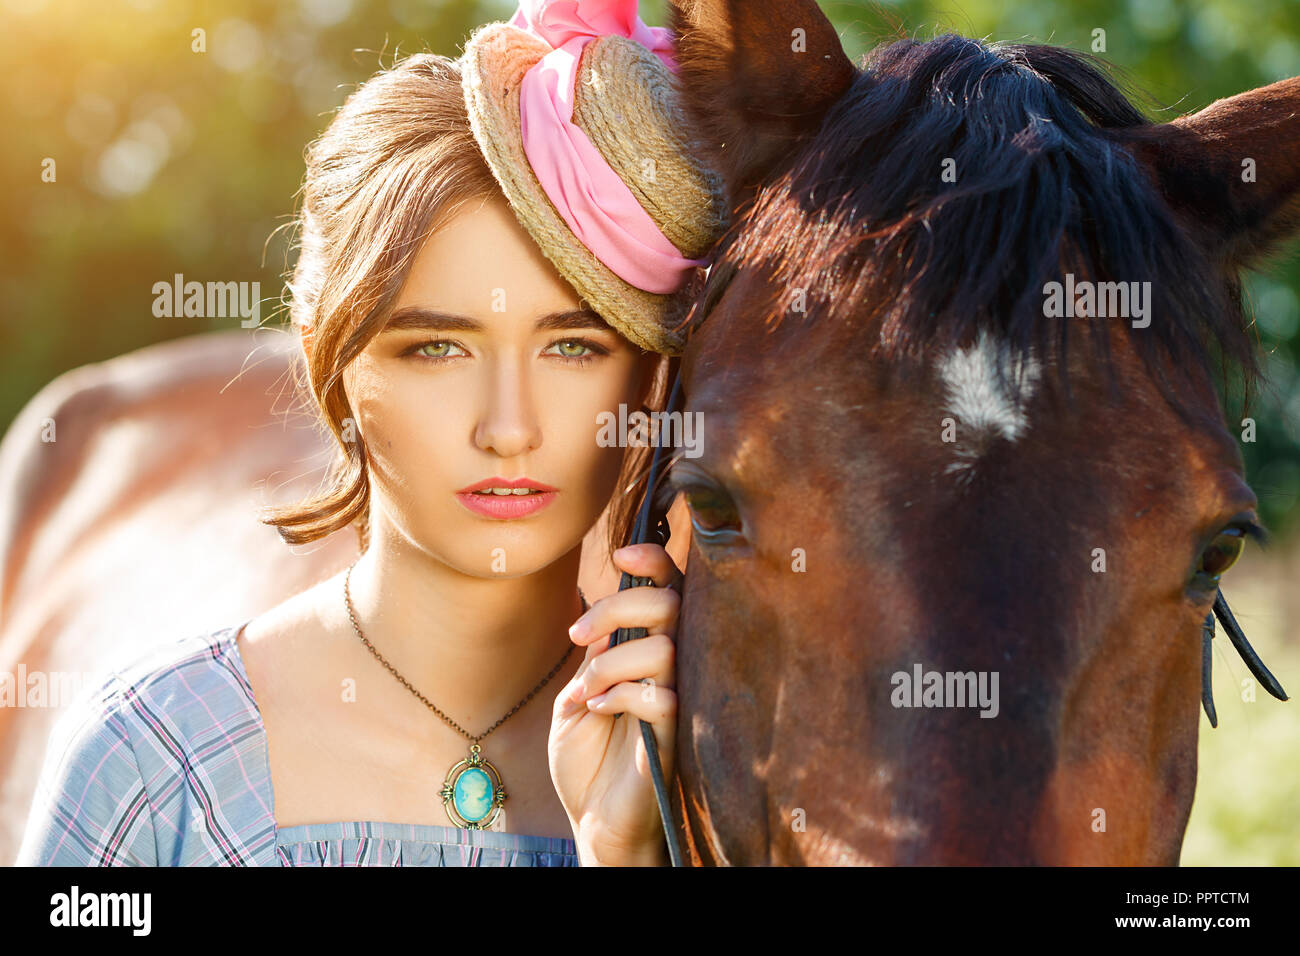 Beautiful Women With Horse High Resolution Stock Photography And Images Alamy